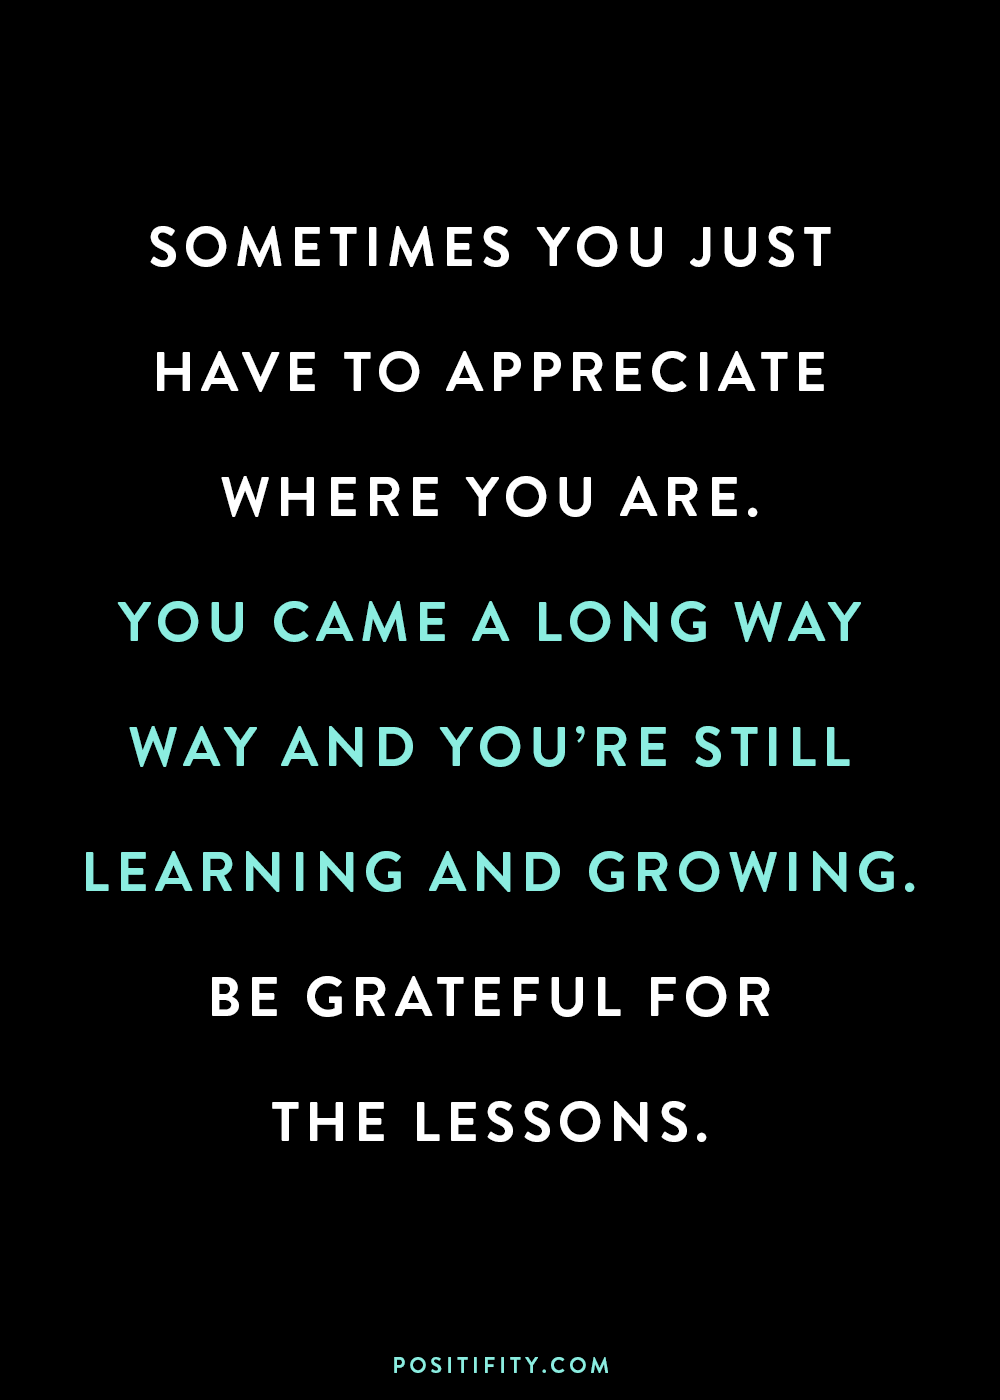 be grateful for the lessons 🙌🏻 motivational quotes